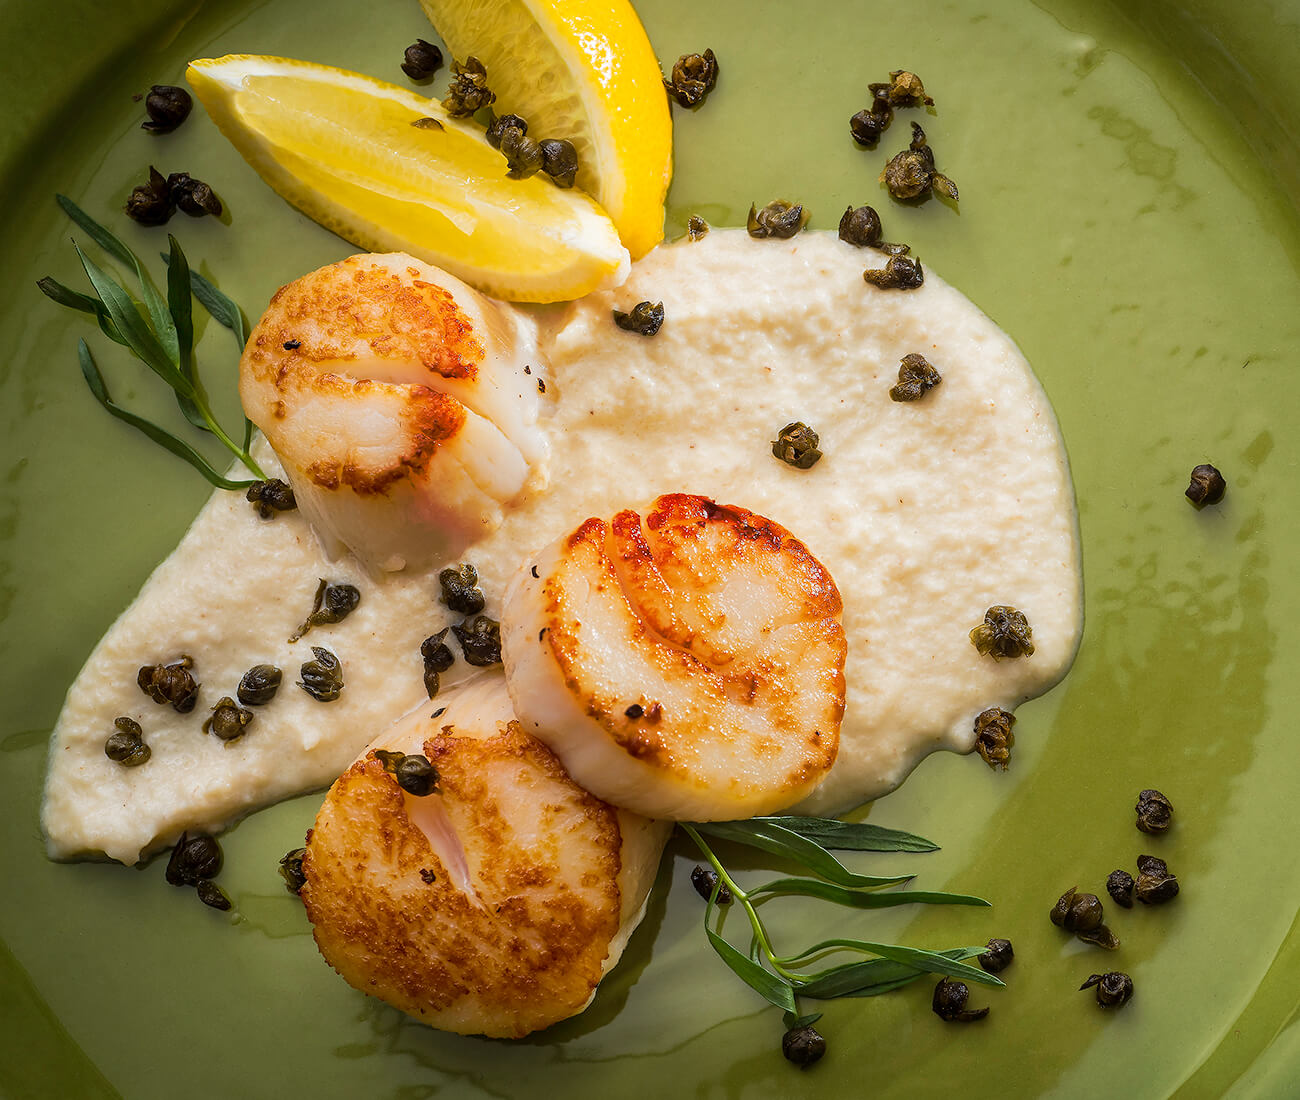 Image for Pan Seared Scallops with Cauliflower Puree